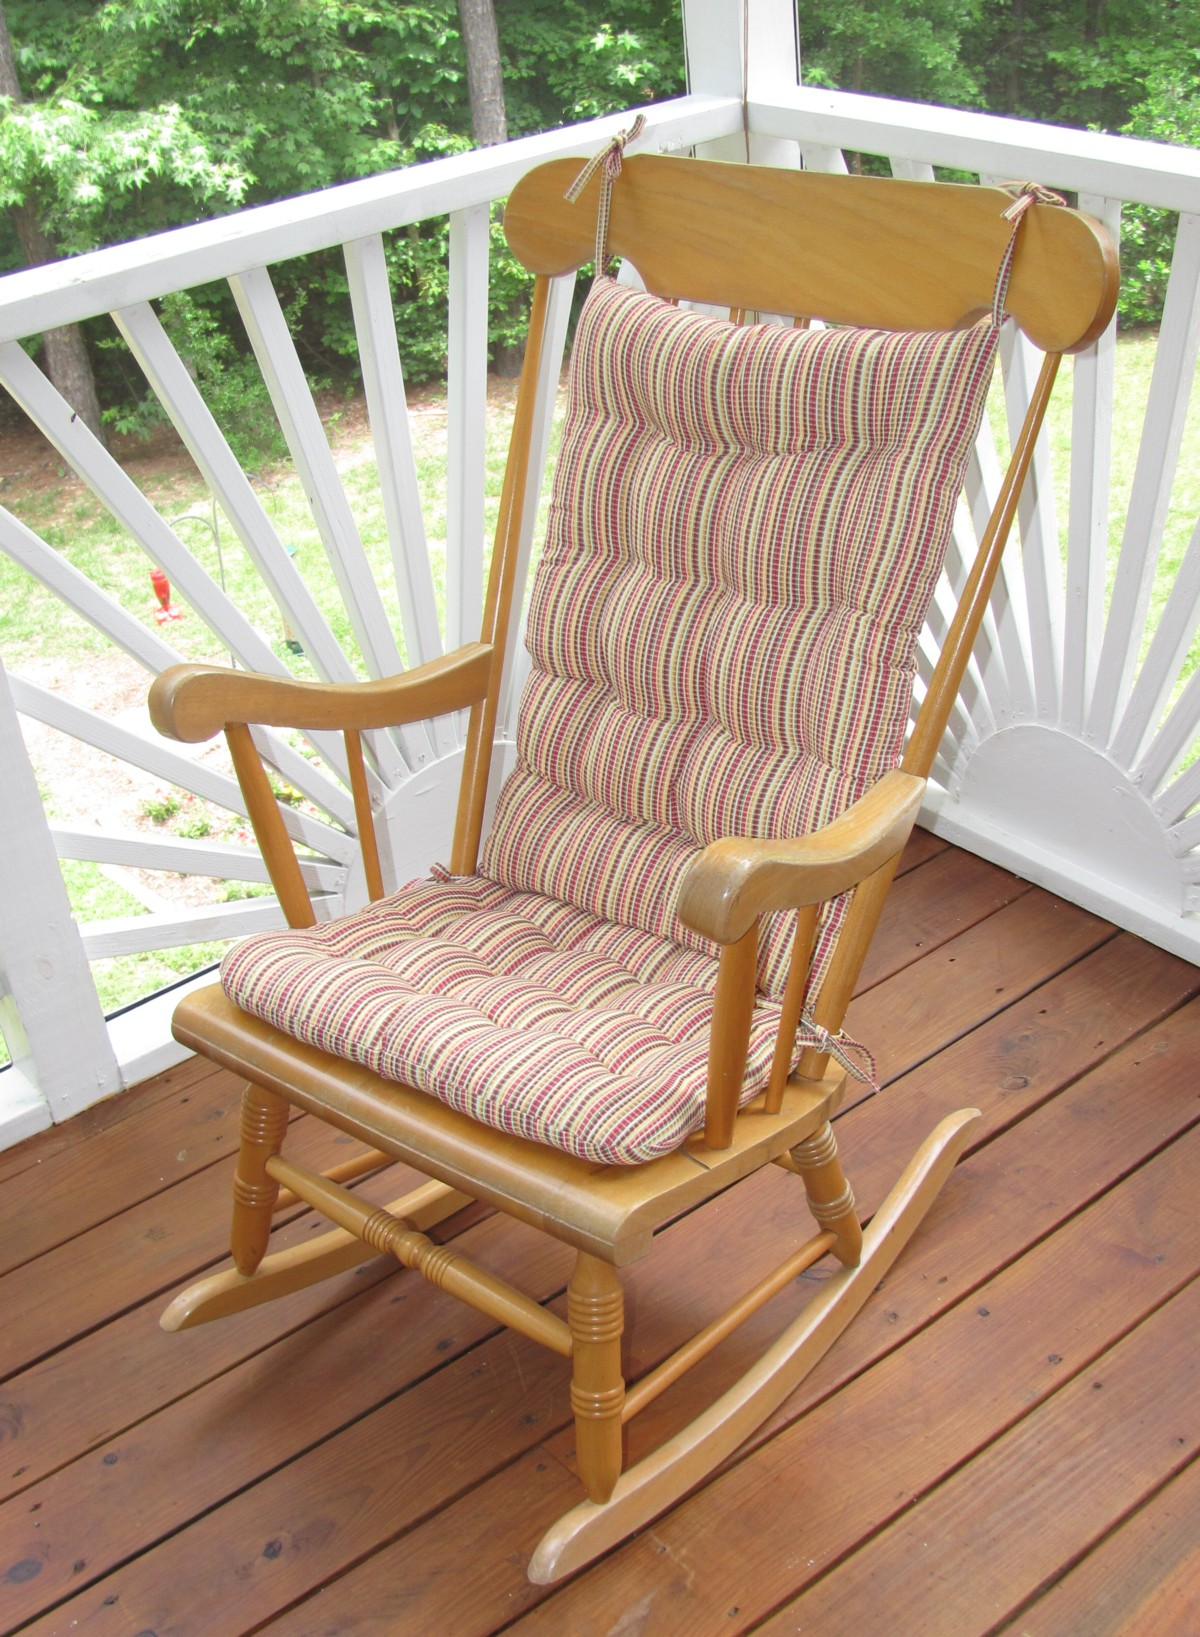 Rocking Chair Cushion | Jumbo Rocking Chair Cushions | Rocking Chairs Cushions